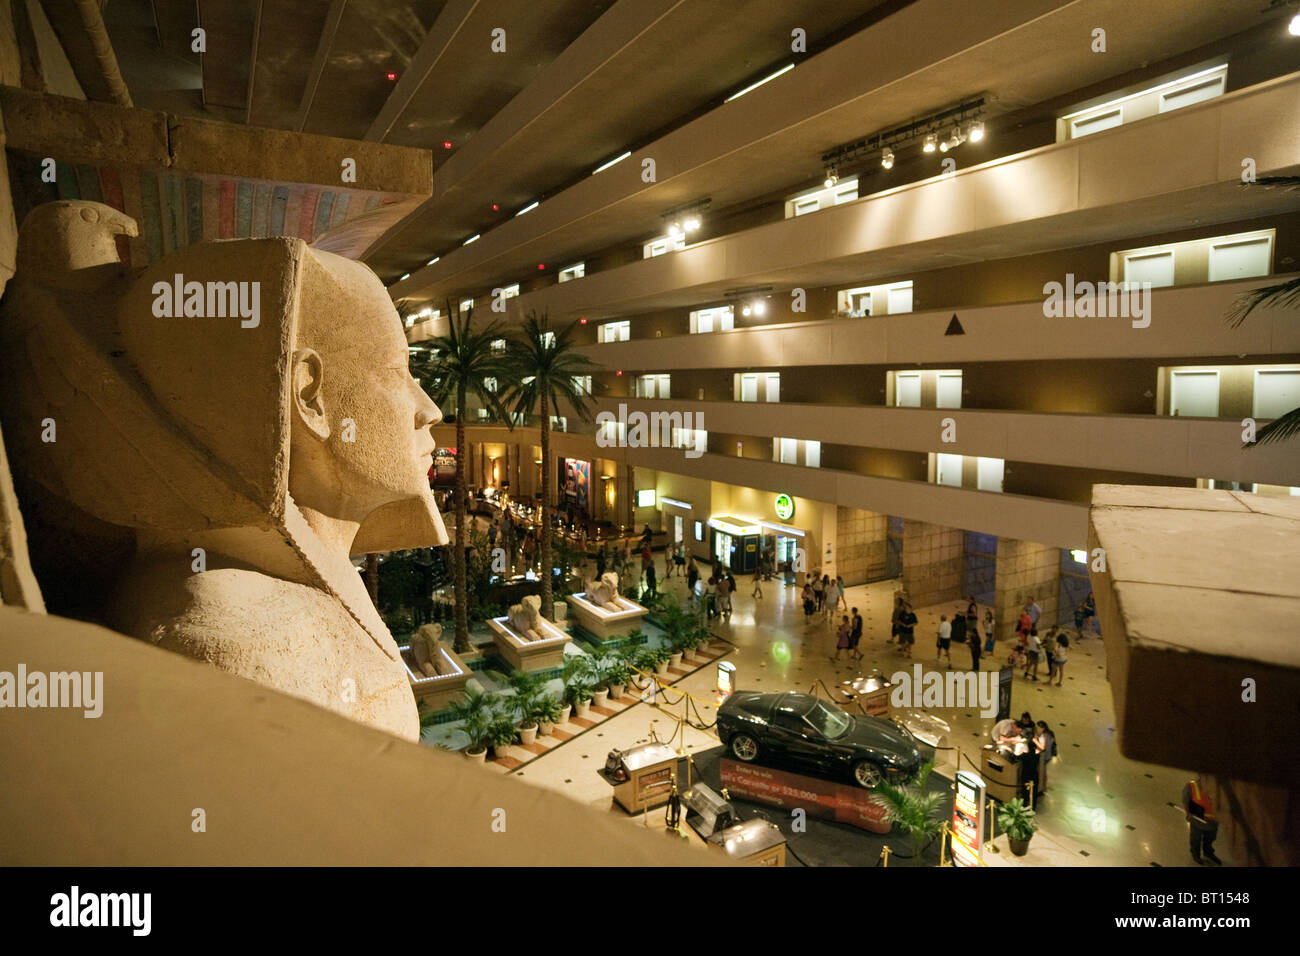 The interior of the Luxor Hotel, the Strip, Las Vegas USA Stock Photo: 31988104 - Alamy